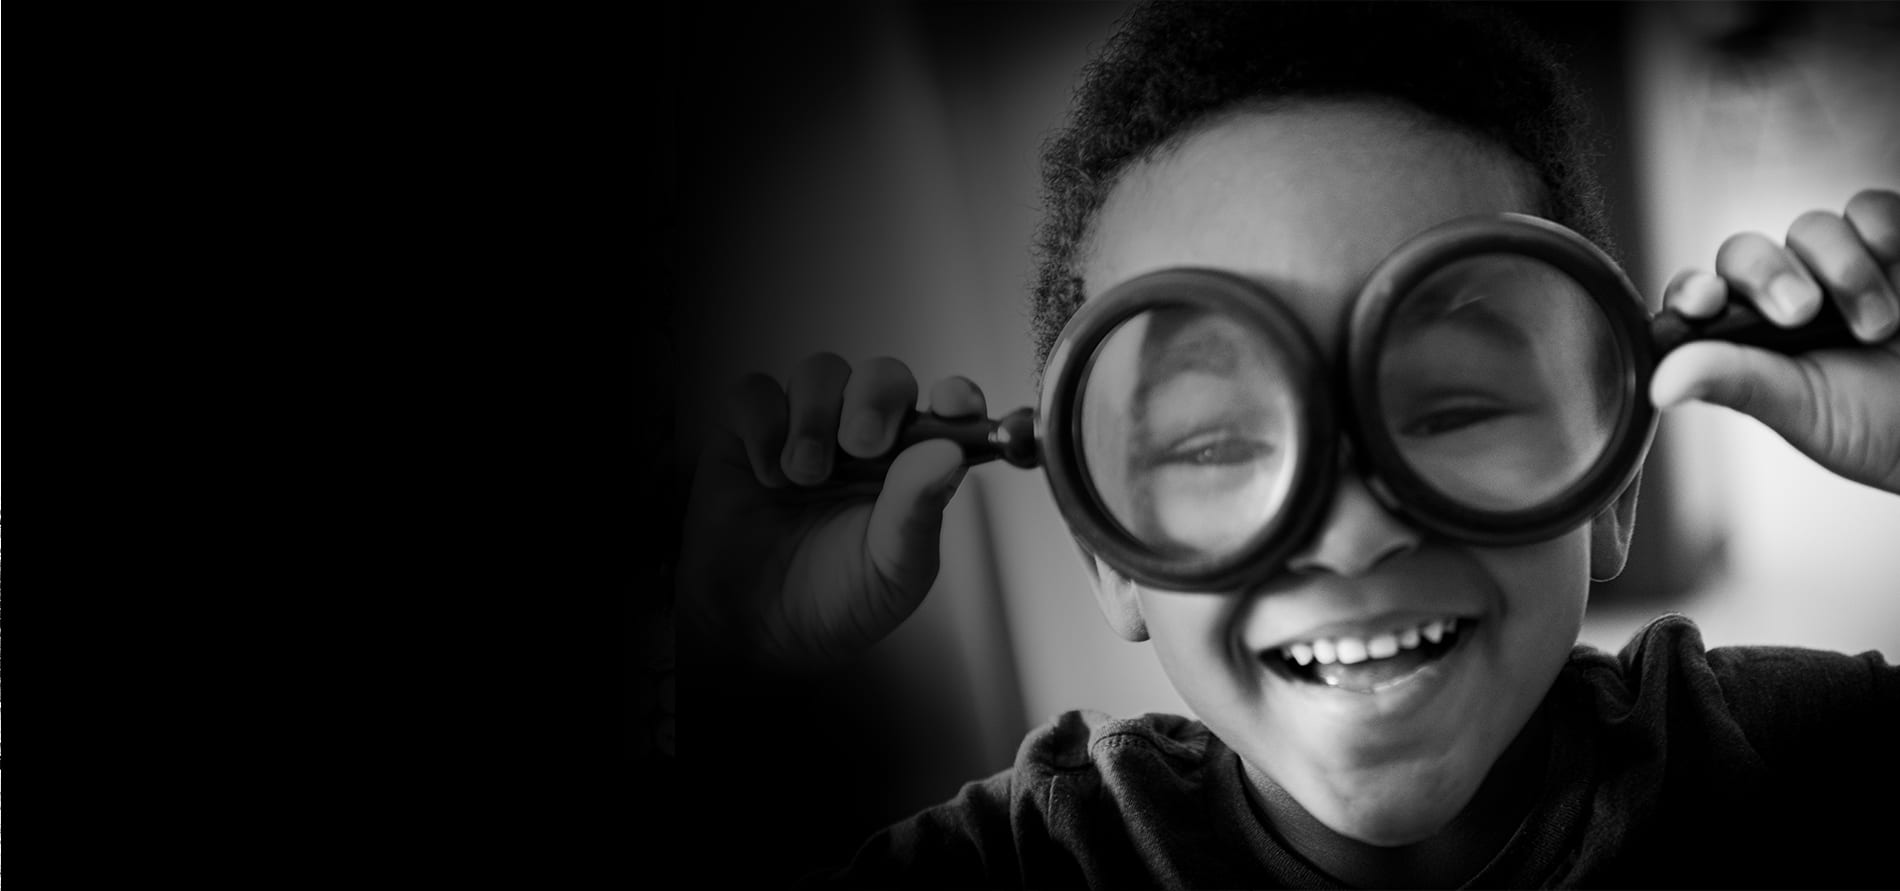 A little boy plays around with magnify glasses